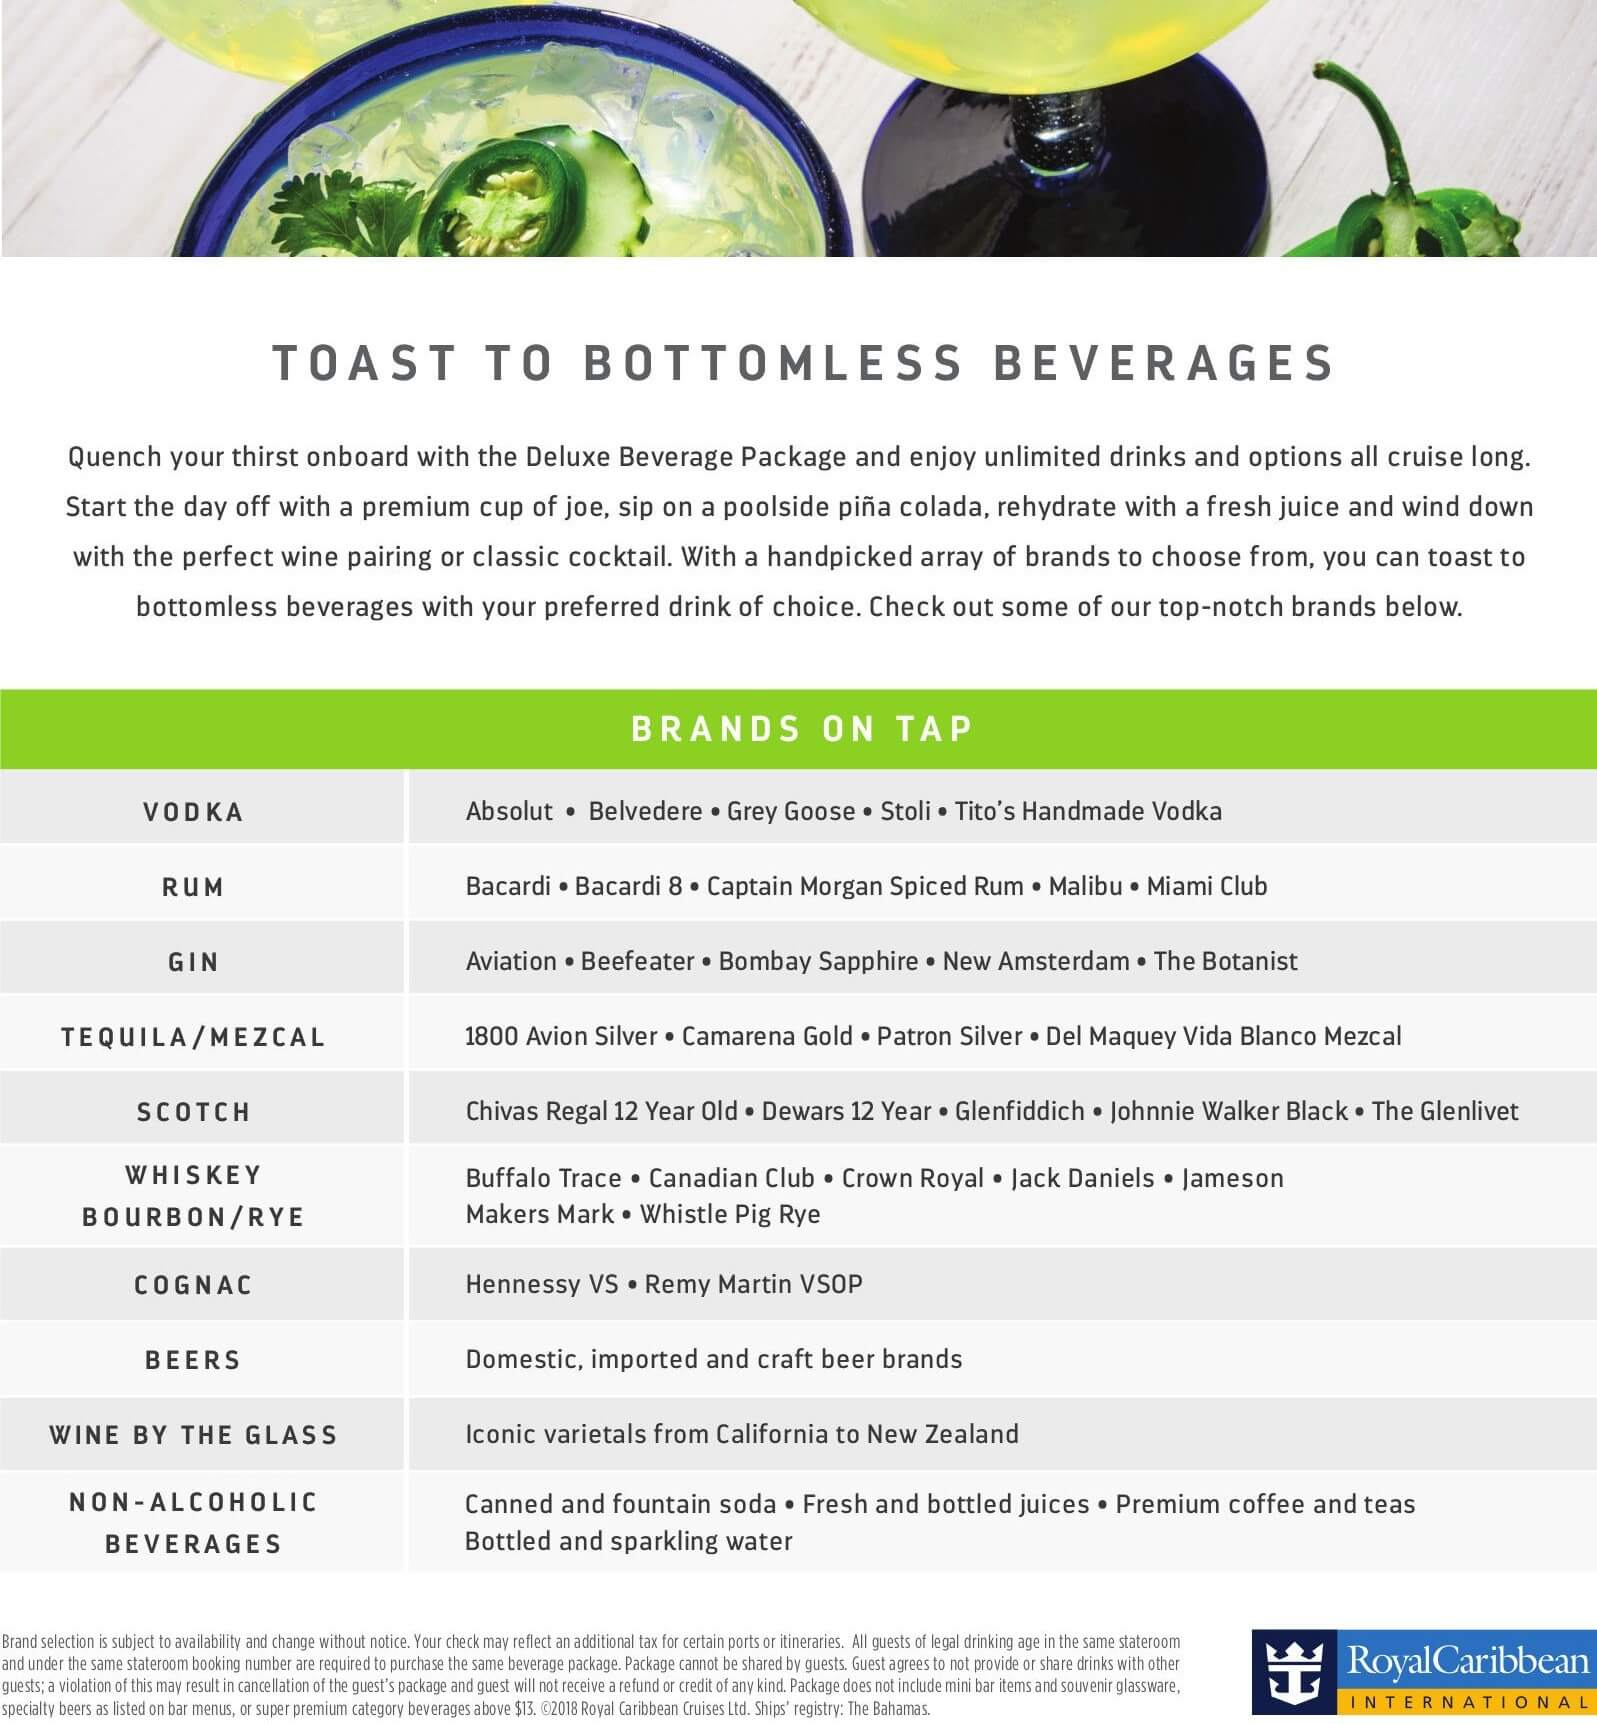 Royal Caribbean's Deluxe Beverage Package